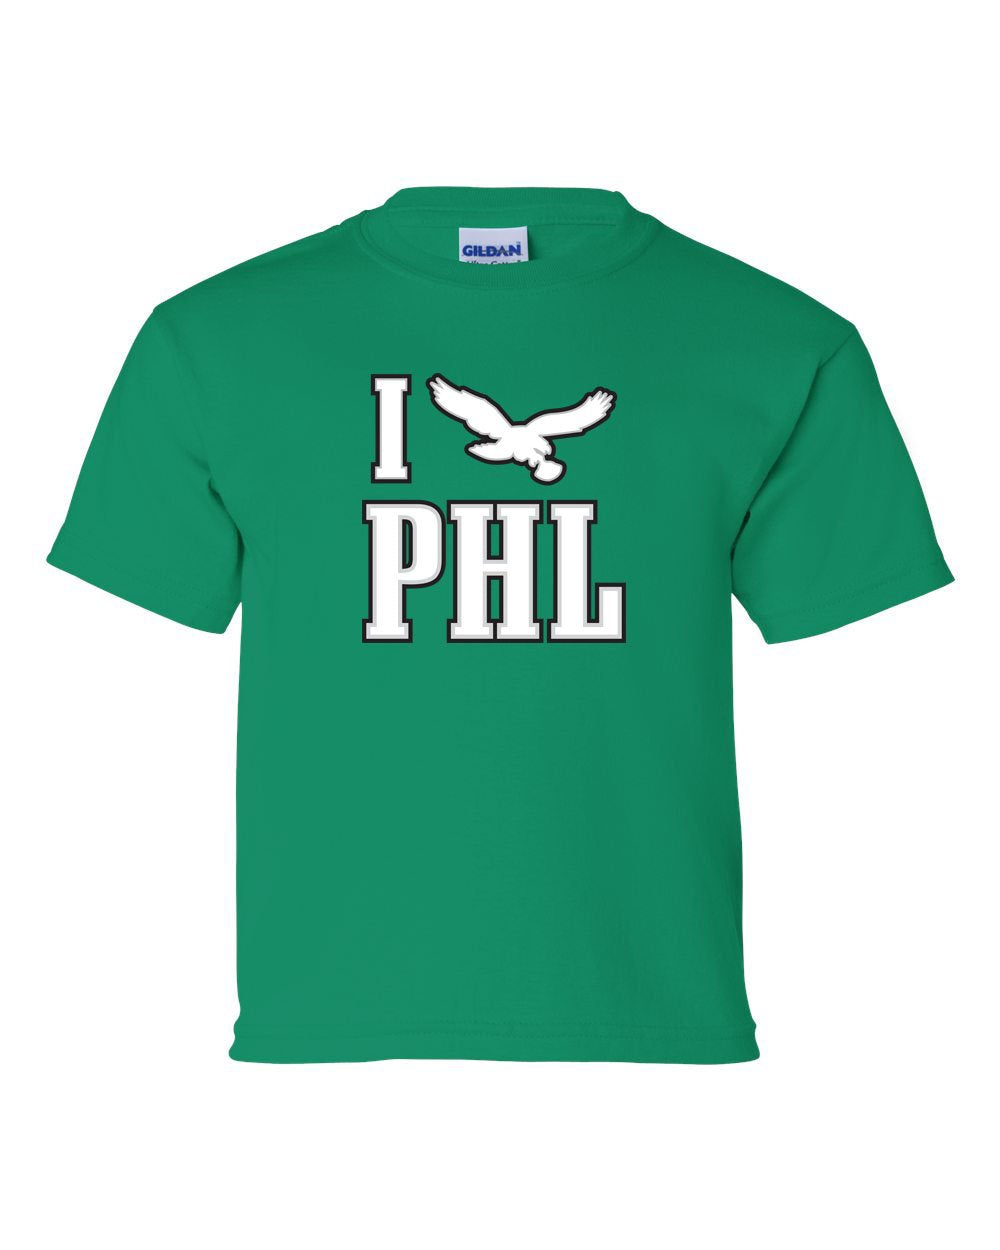 I PHL KIDS T-Shirt